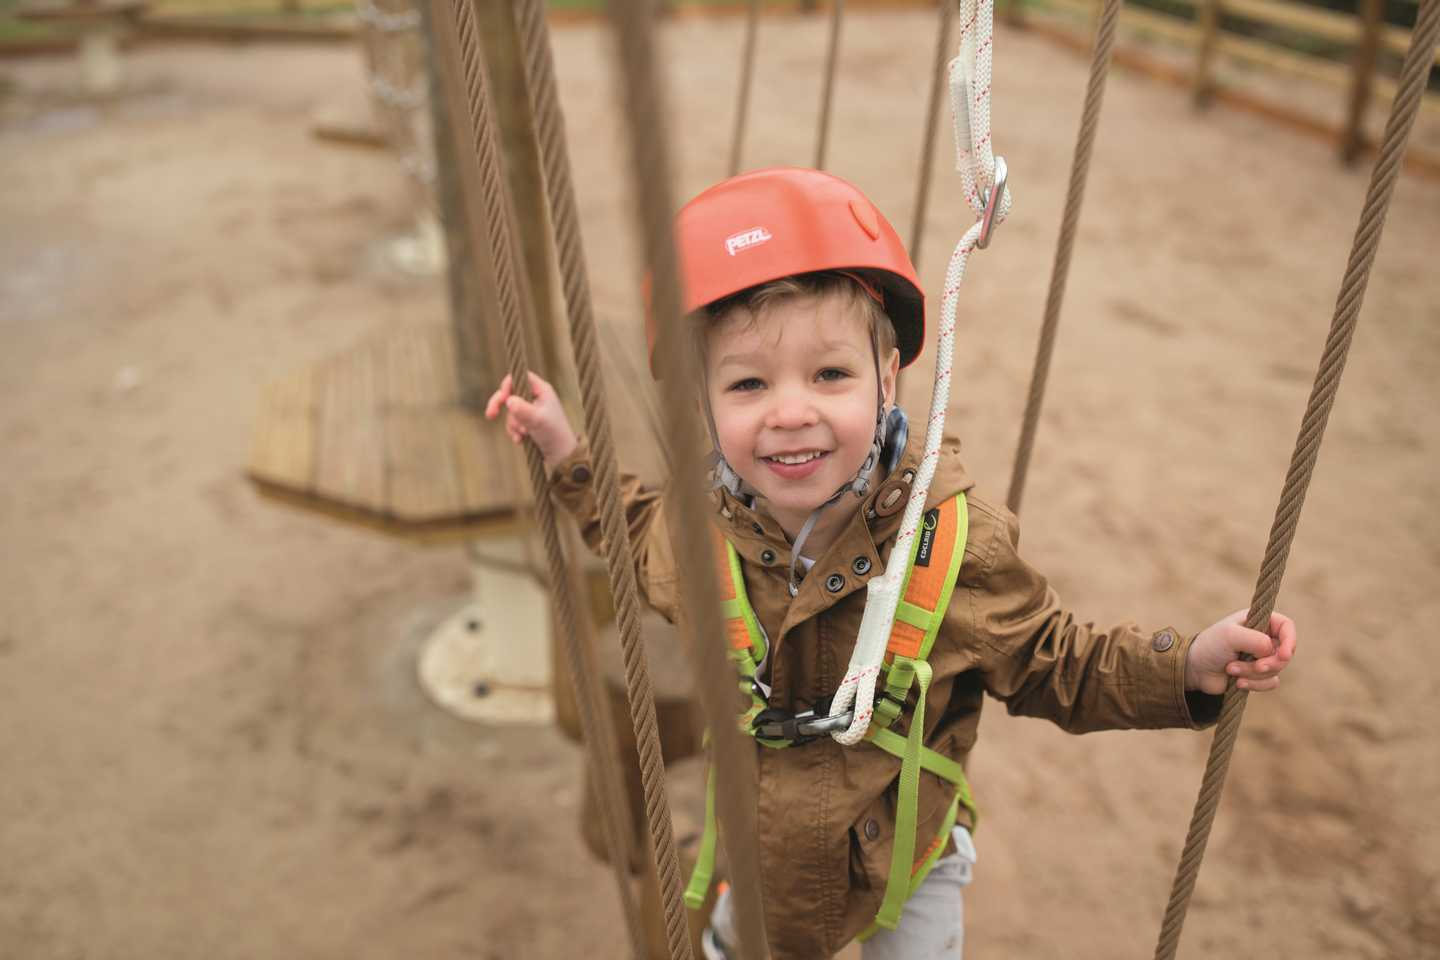 A boy on the Mini Aerial Adventure